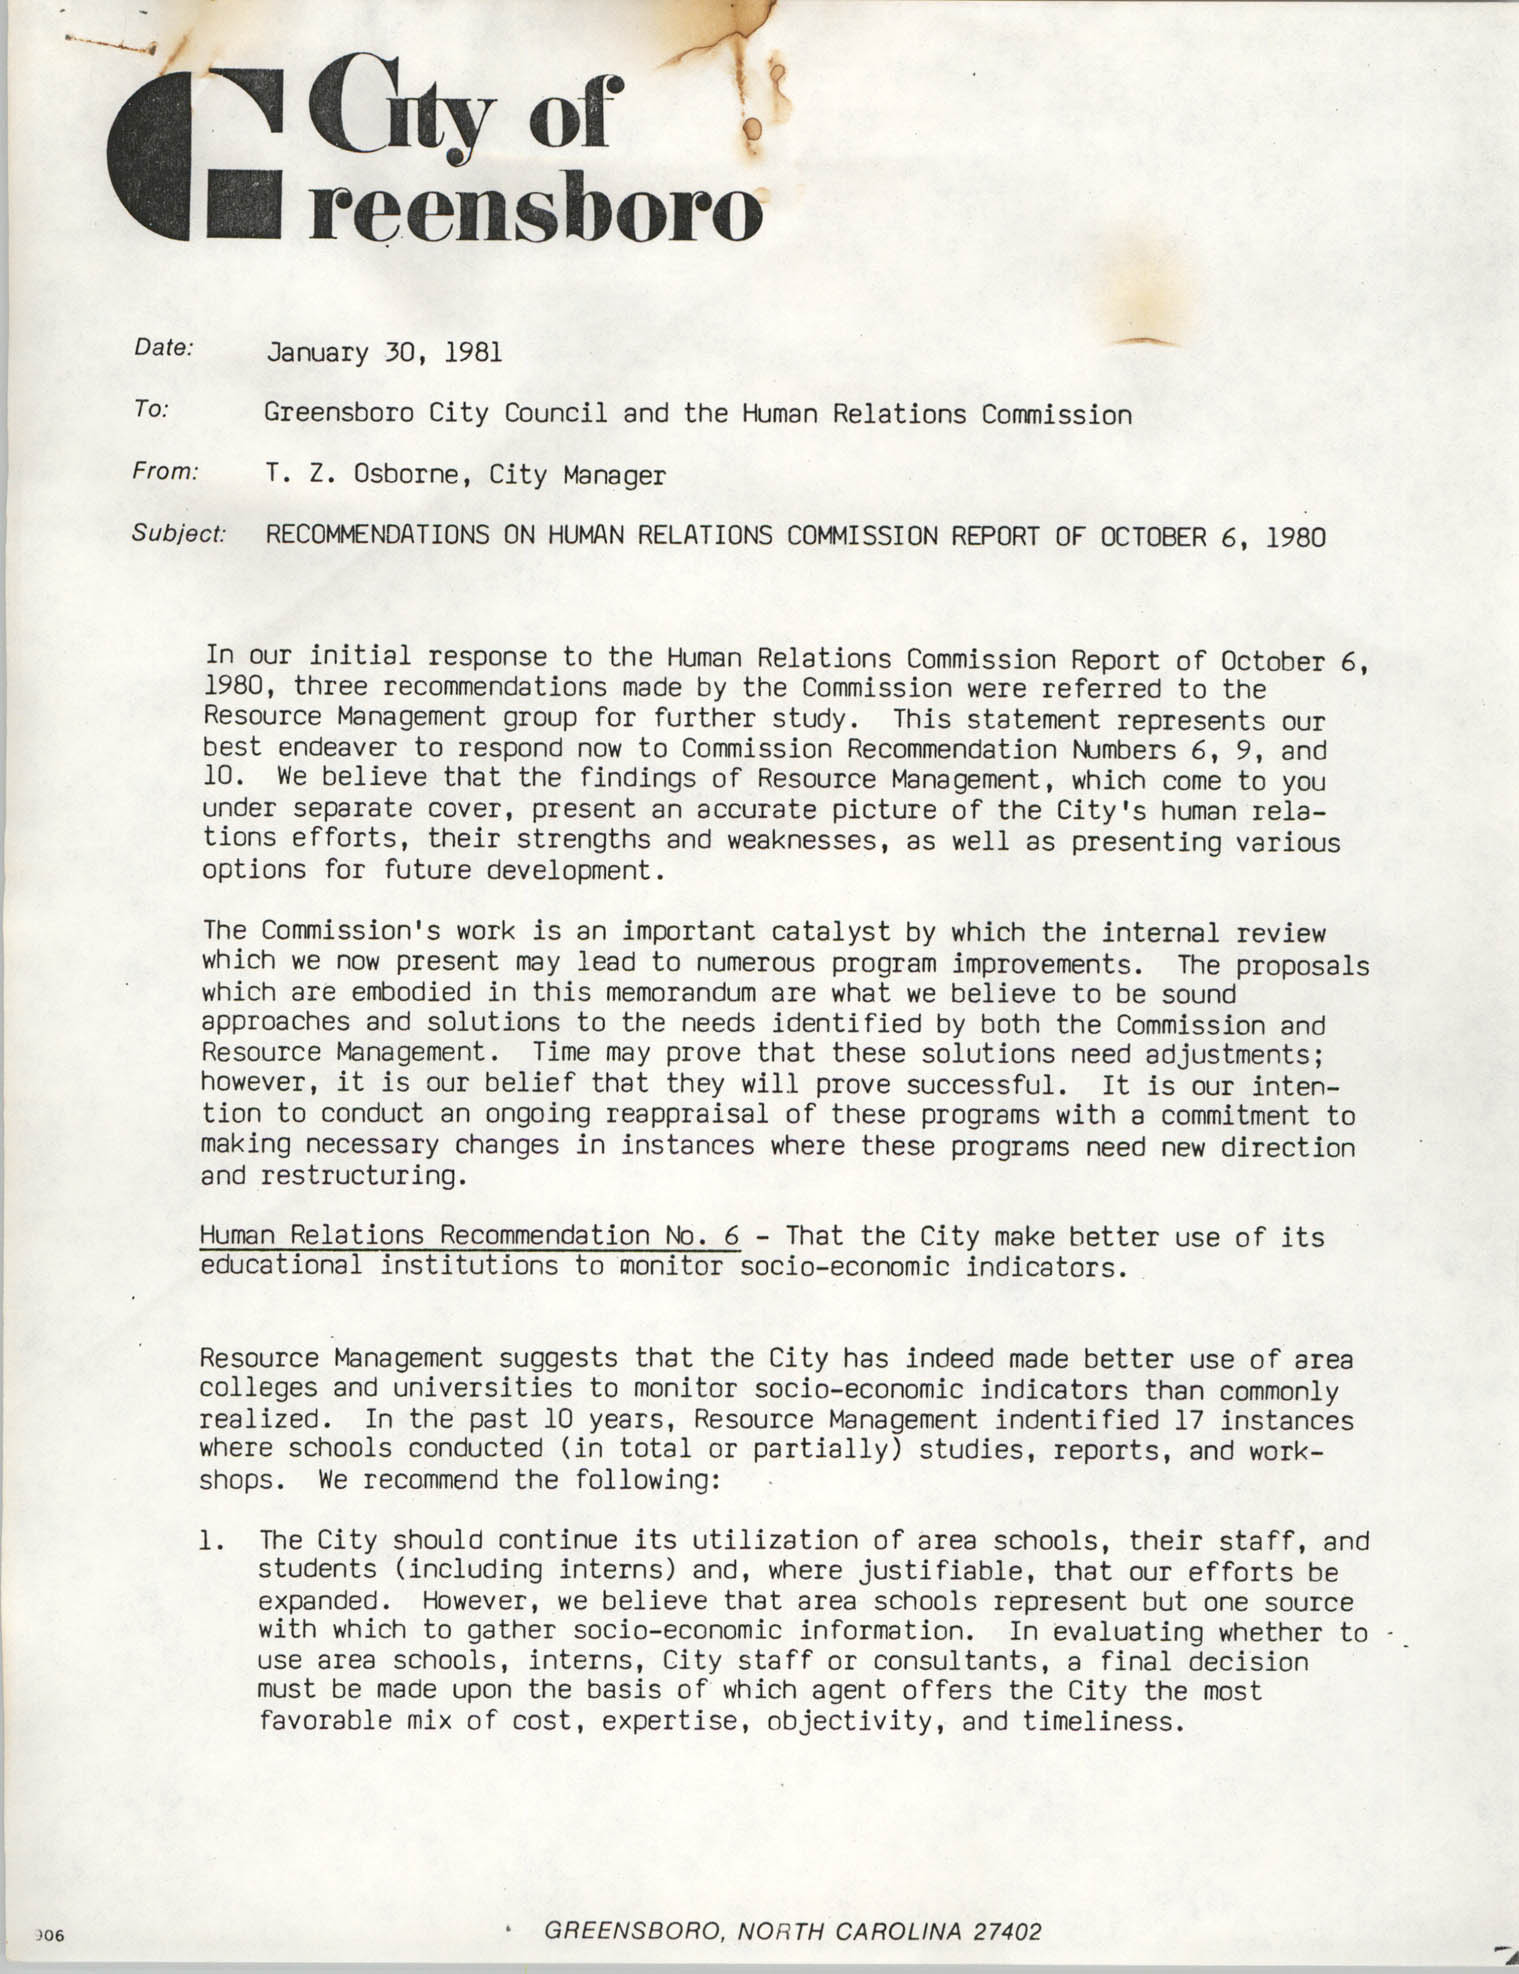 City of Greensboro Memorandum, January 30, 1981